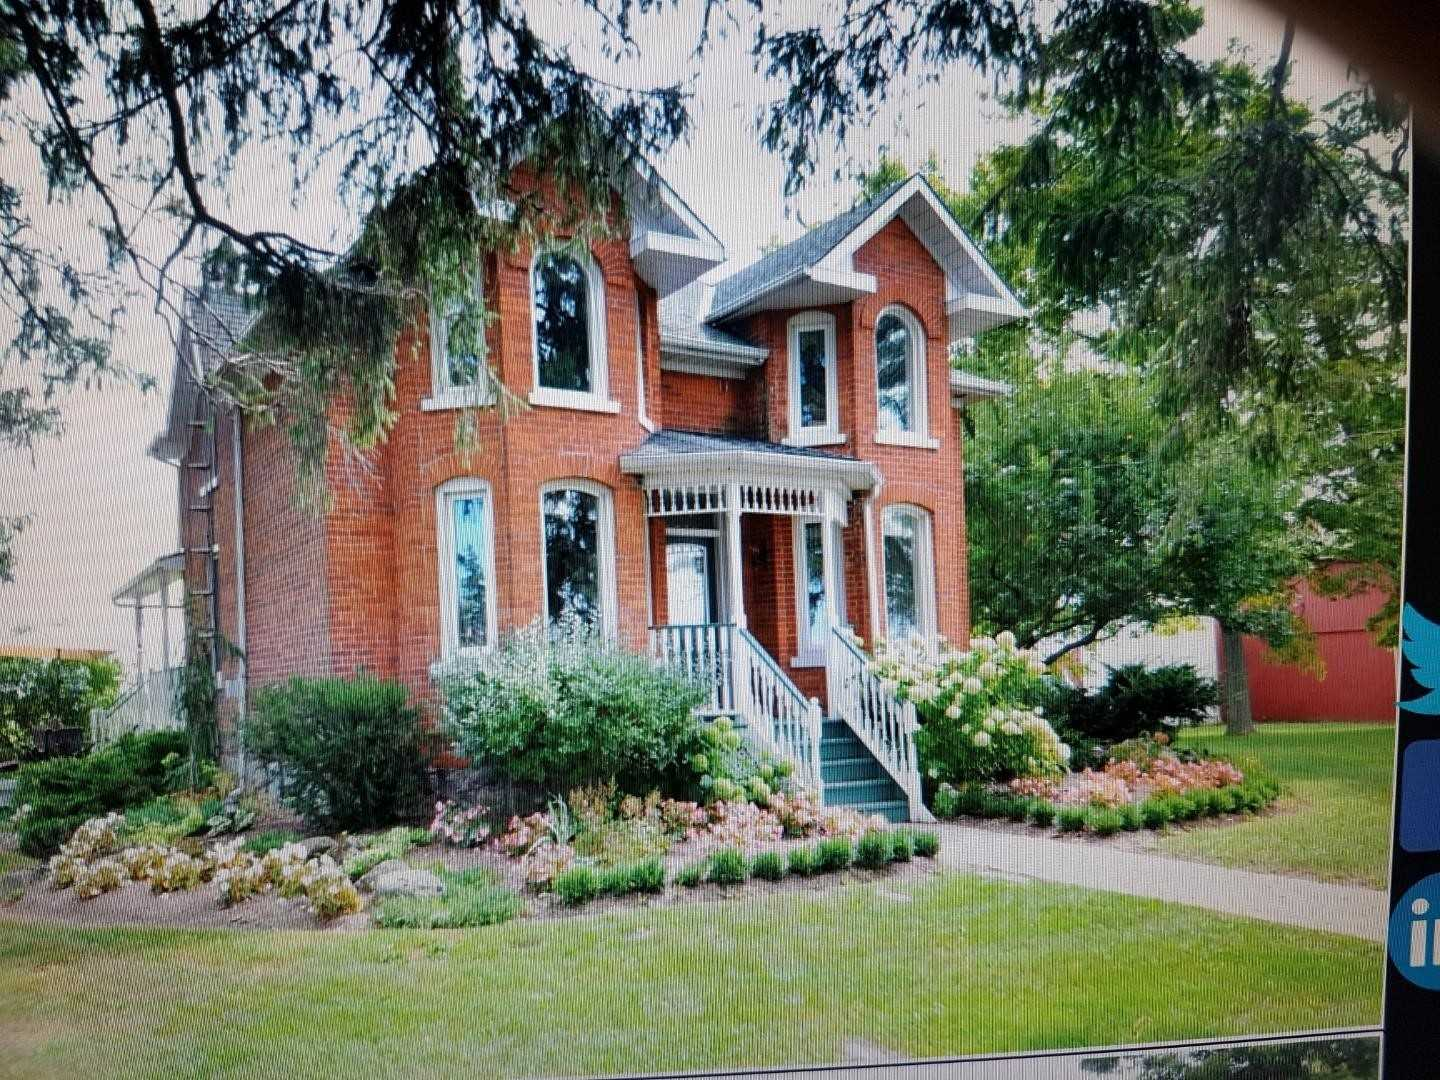 Gorgeous 134.31 Acres Near Glenbrook Municipal Centre, Summit Park & Turner Park. Approximately 2800 Sqft Victorian Home. Stunning Property With 4 Bedrooms, High Ceiling. 134.31 Acres Include 3 Barns, 3 Silos & A 3 Car Detached  Garage.